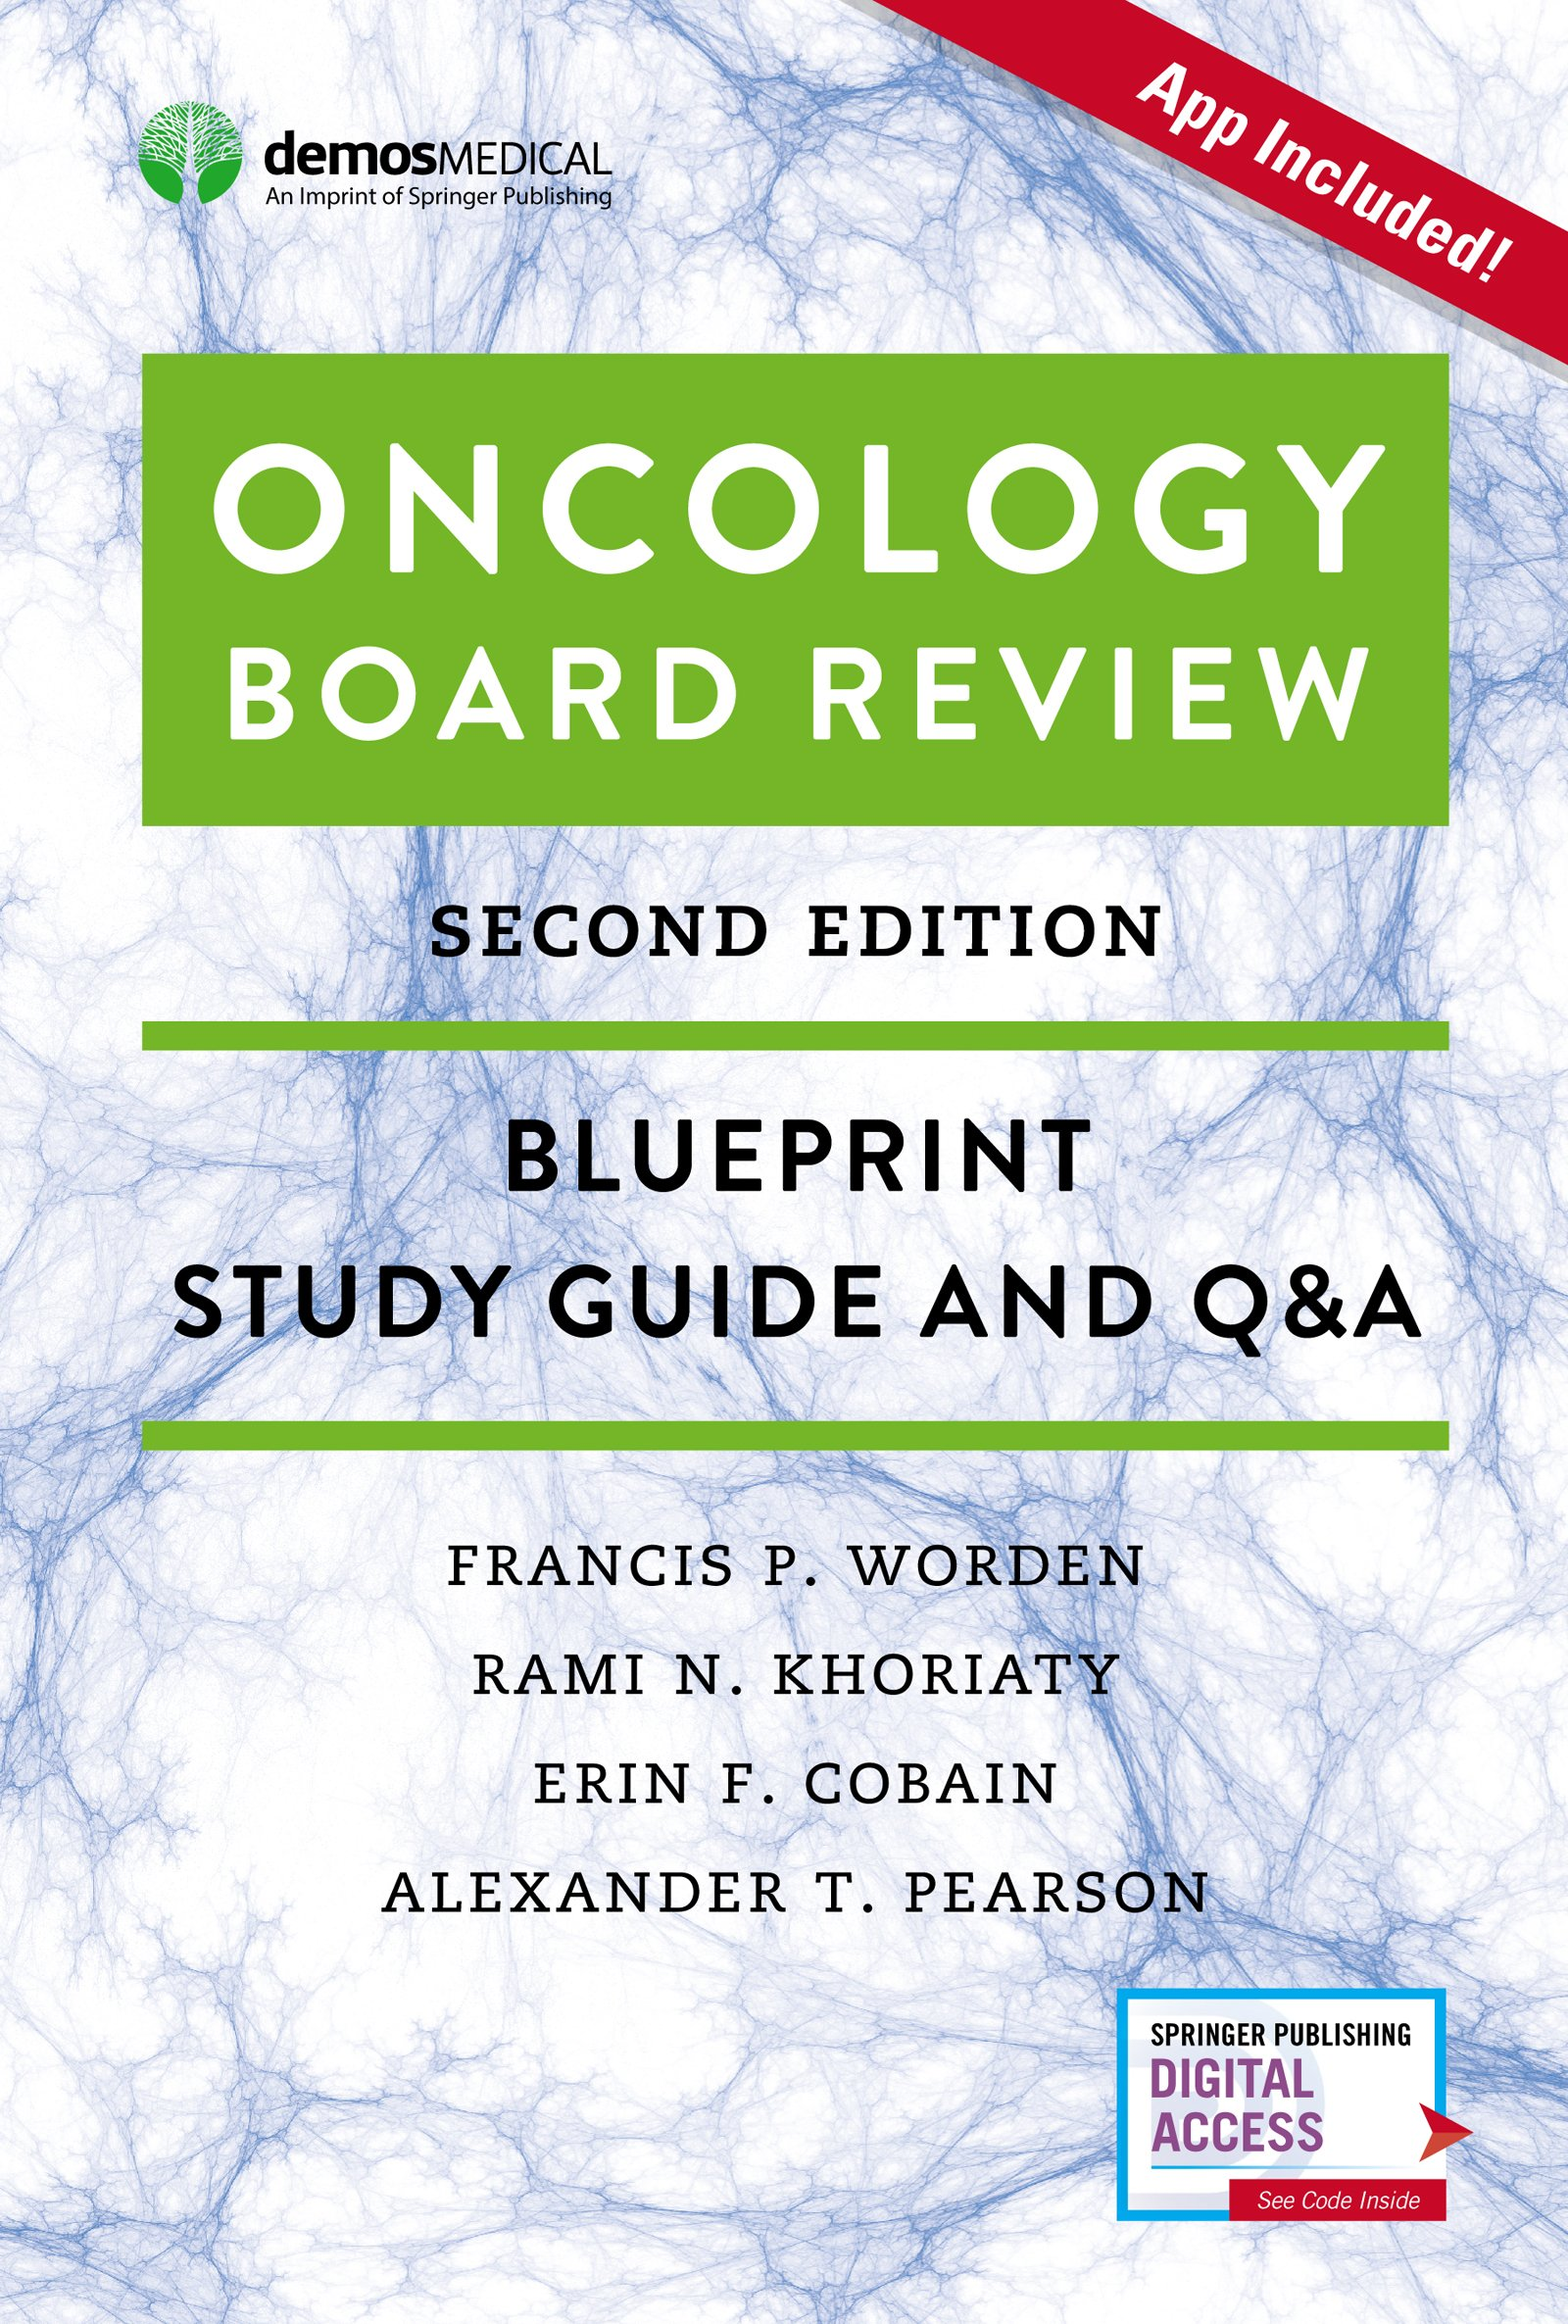 Buy oncology board review blueprint study guide and qa book buy oncology board review blueprint study guide and qa book online at low prices in india oncology board review blueprint study guide and qa reviews malvernweather Image collections